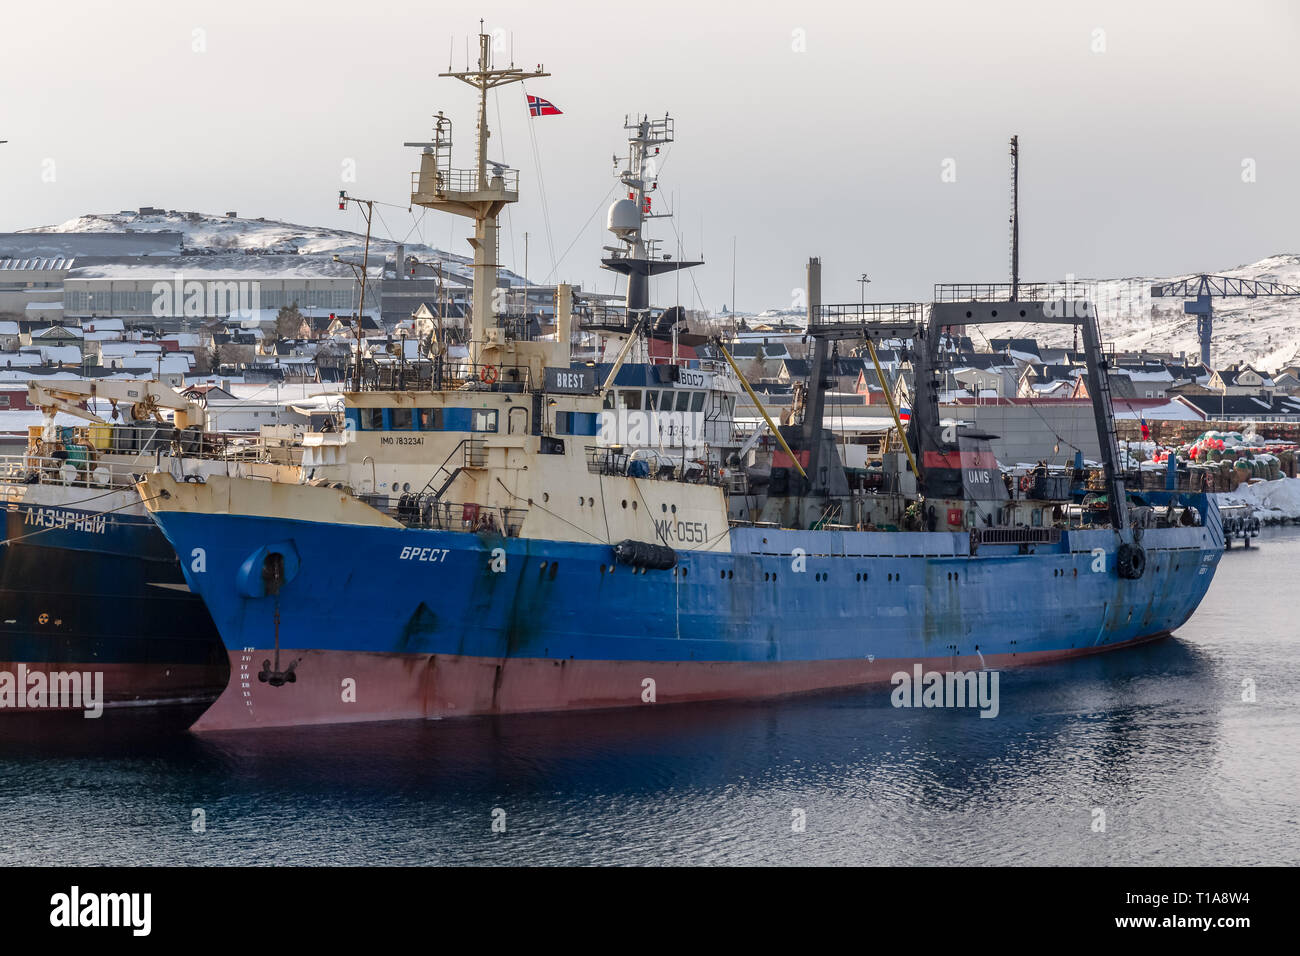 The fishing trawler Brest, from Russia, in port at Kirkenes in Northern Norway. - Stock Image